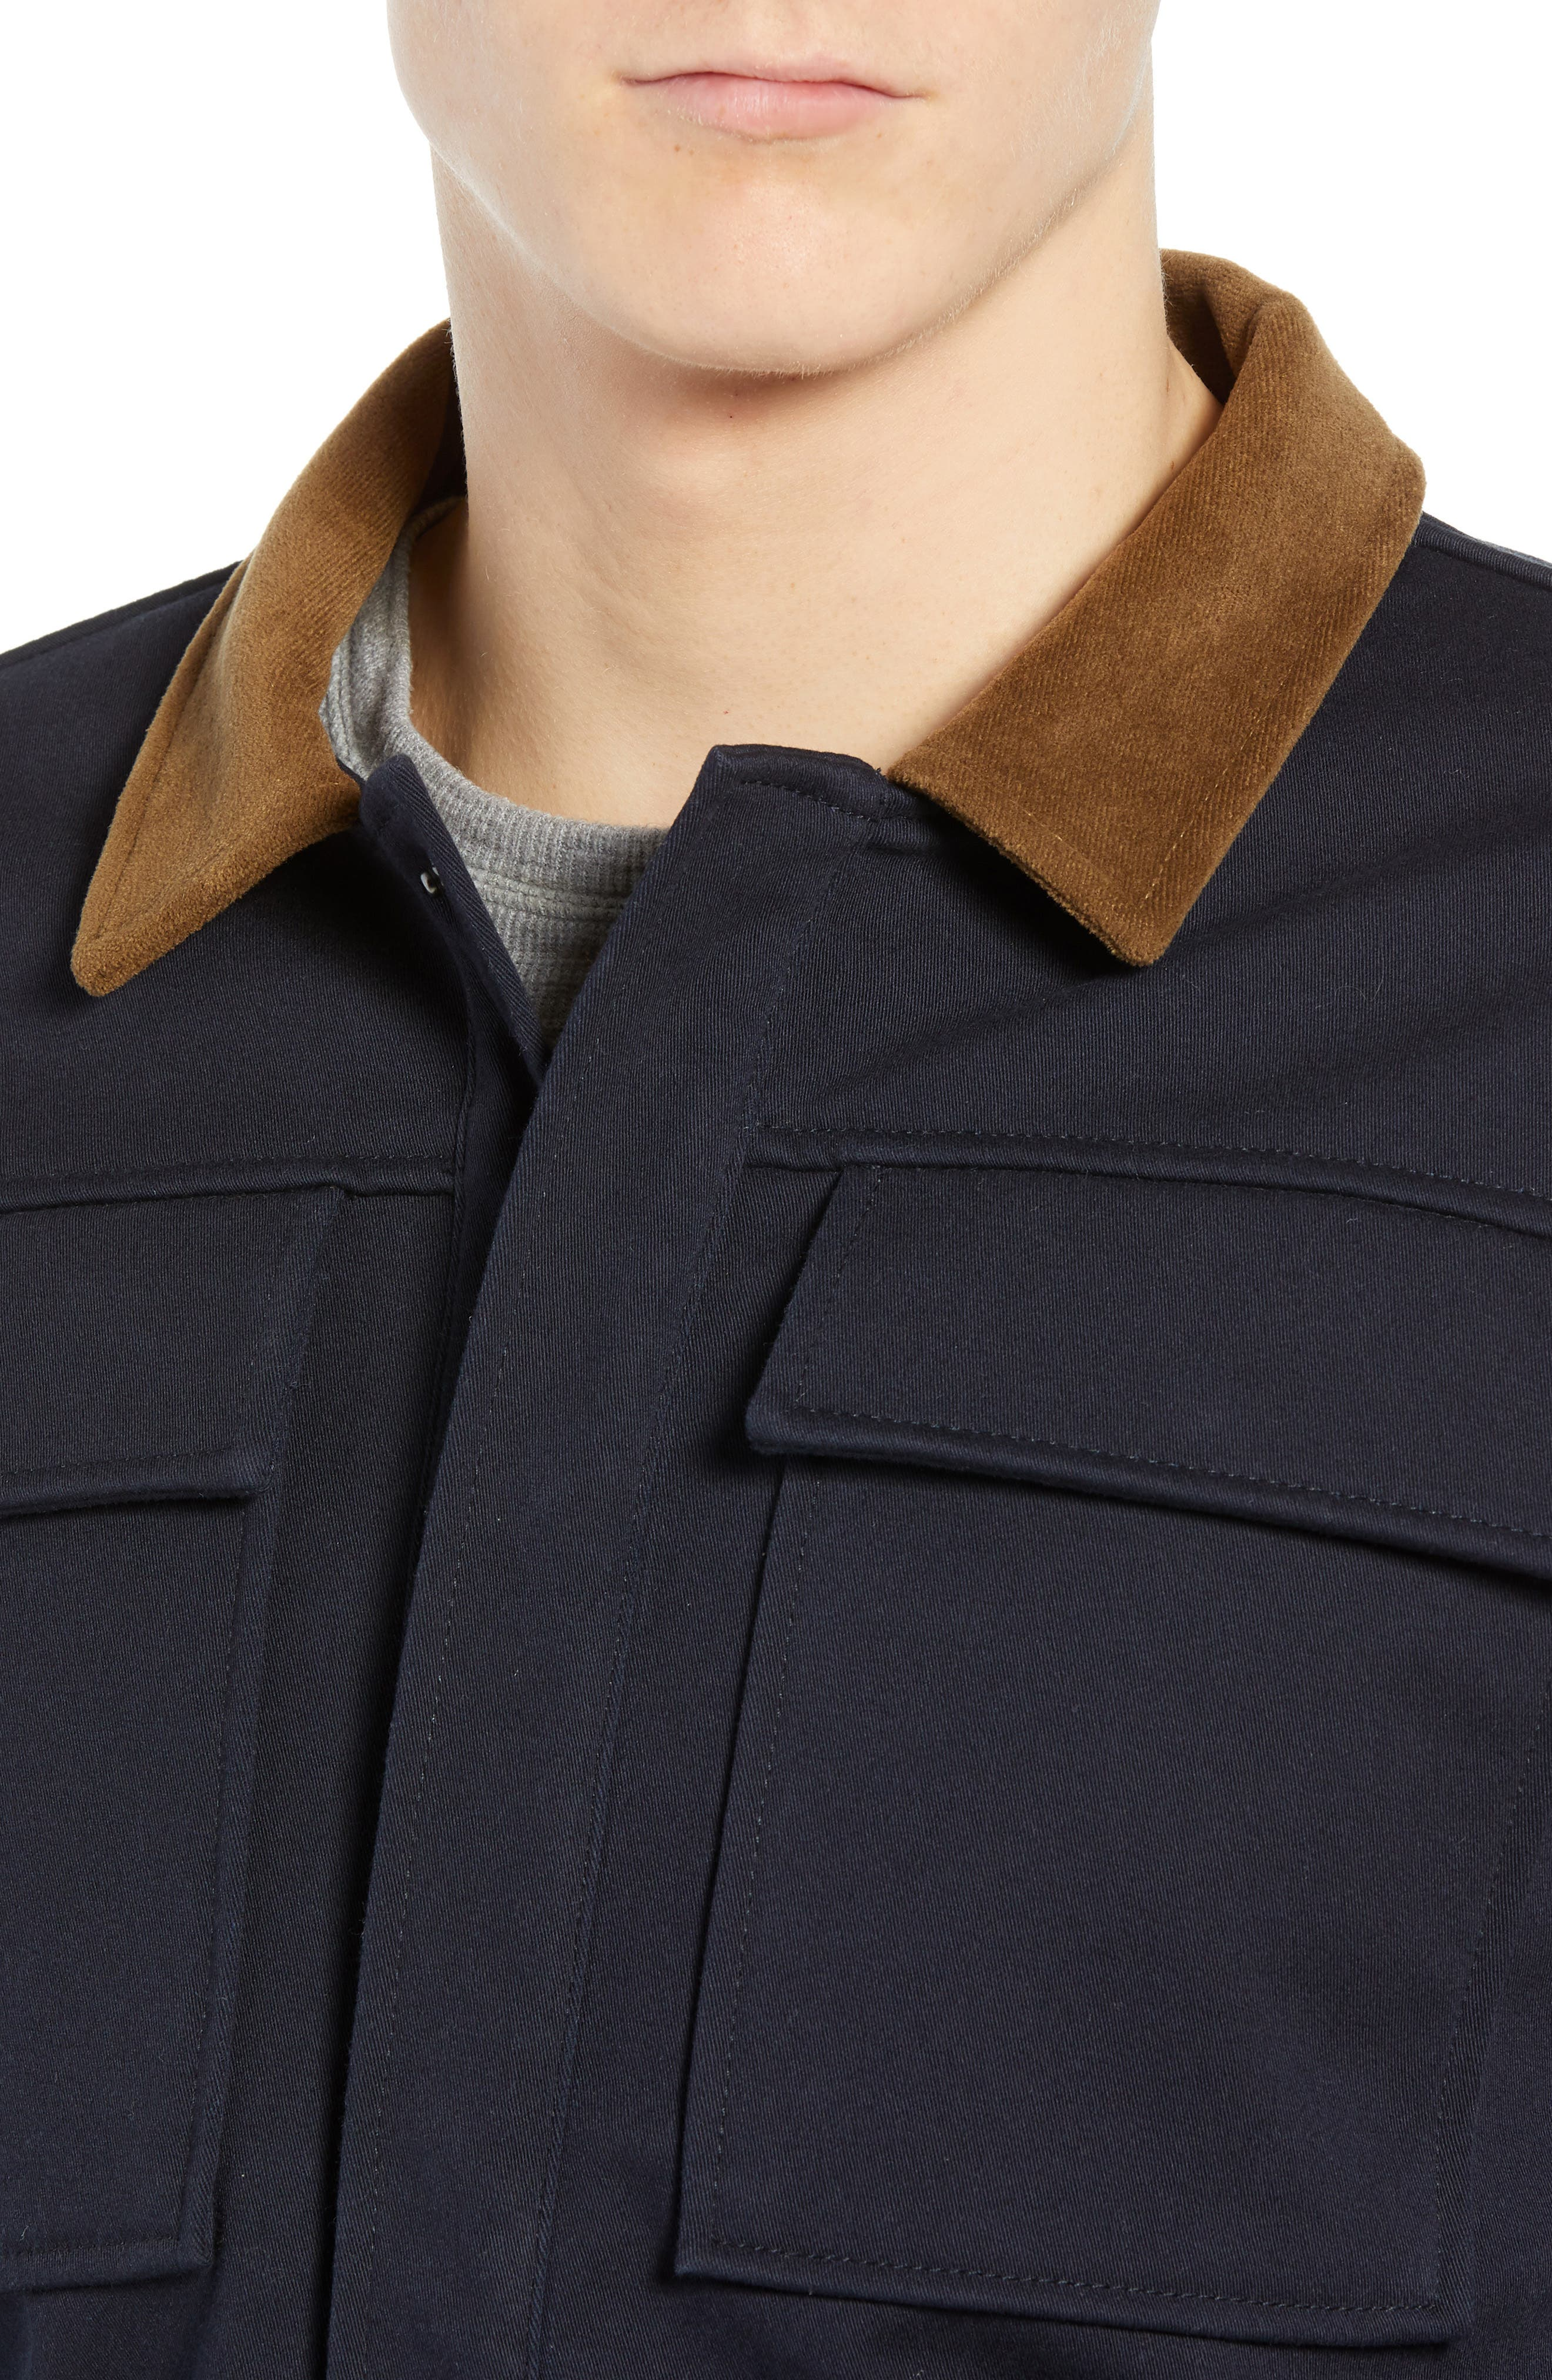 Velour Collar Trucker Jacket,                             Alternate thumbnail 4, color,                             NAVY